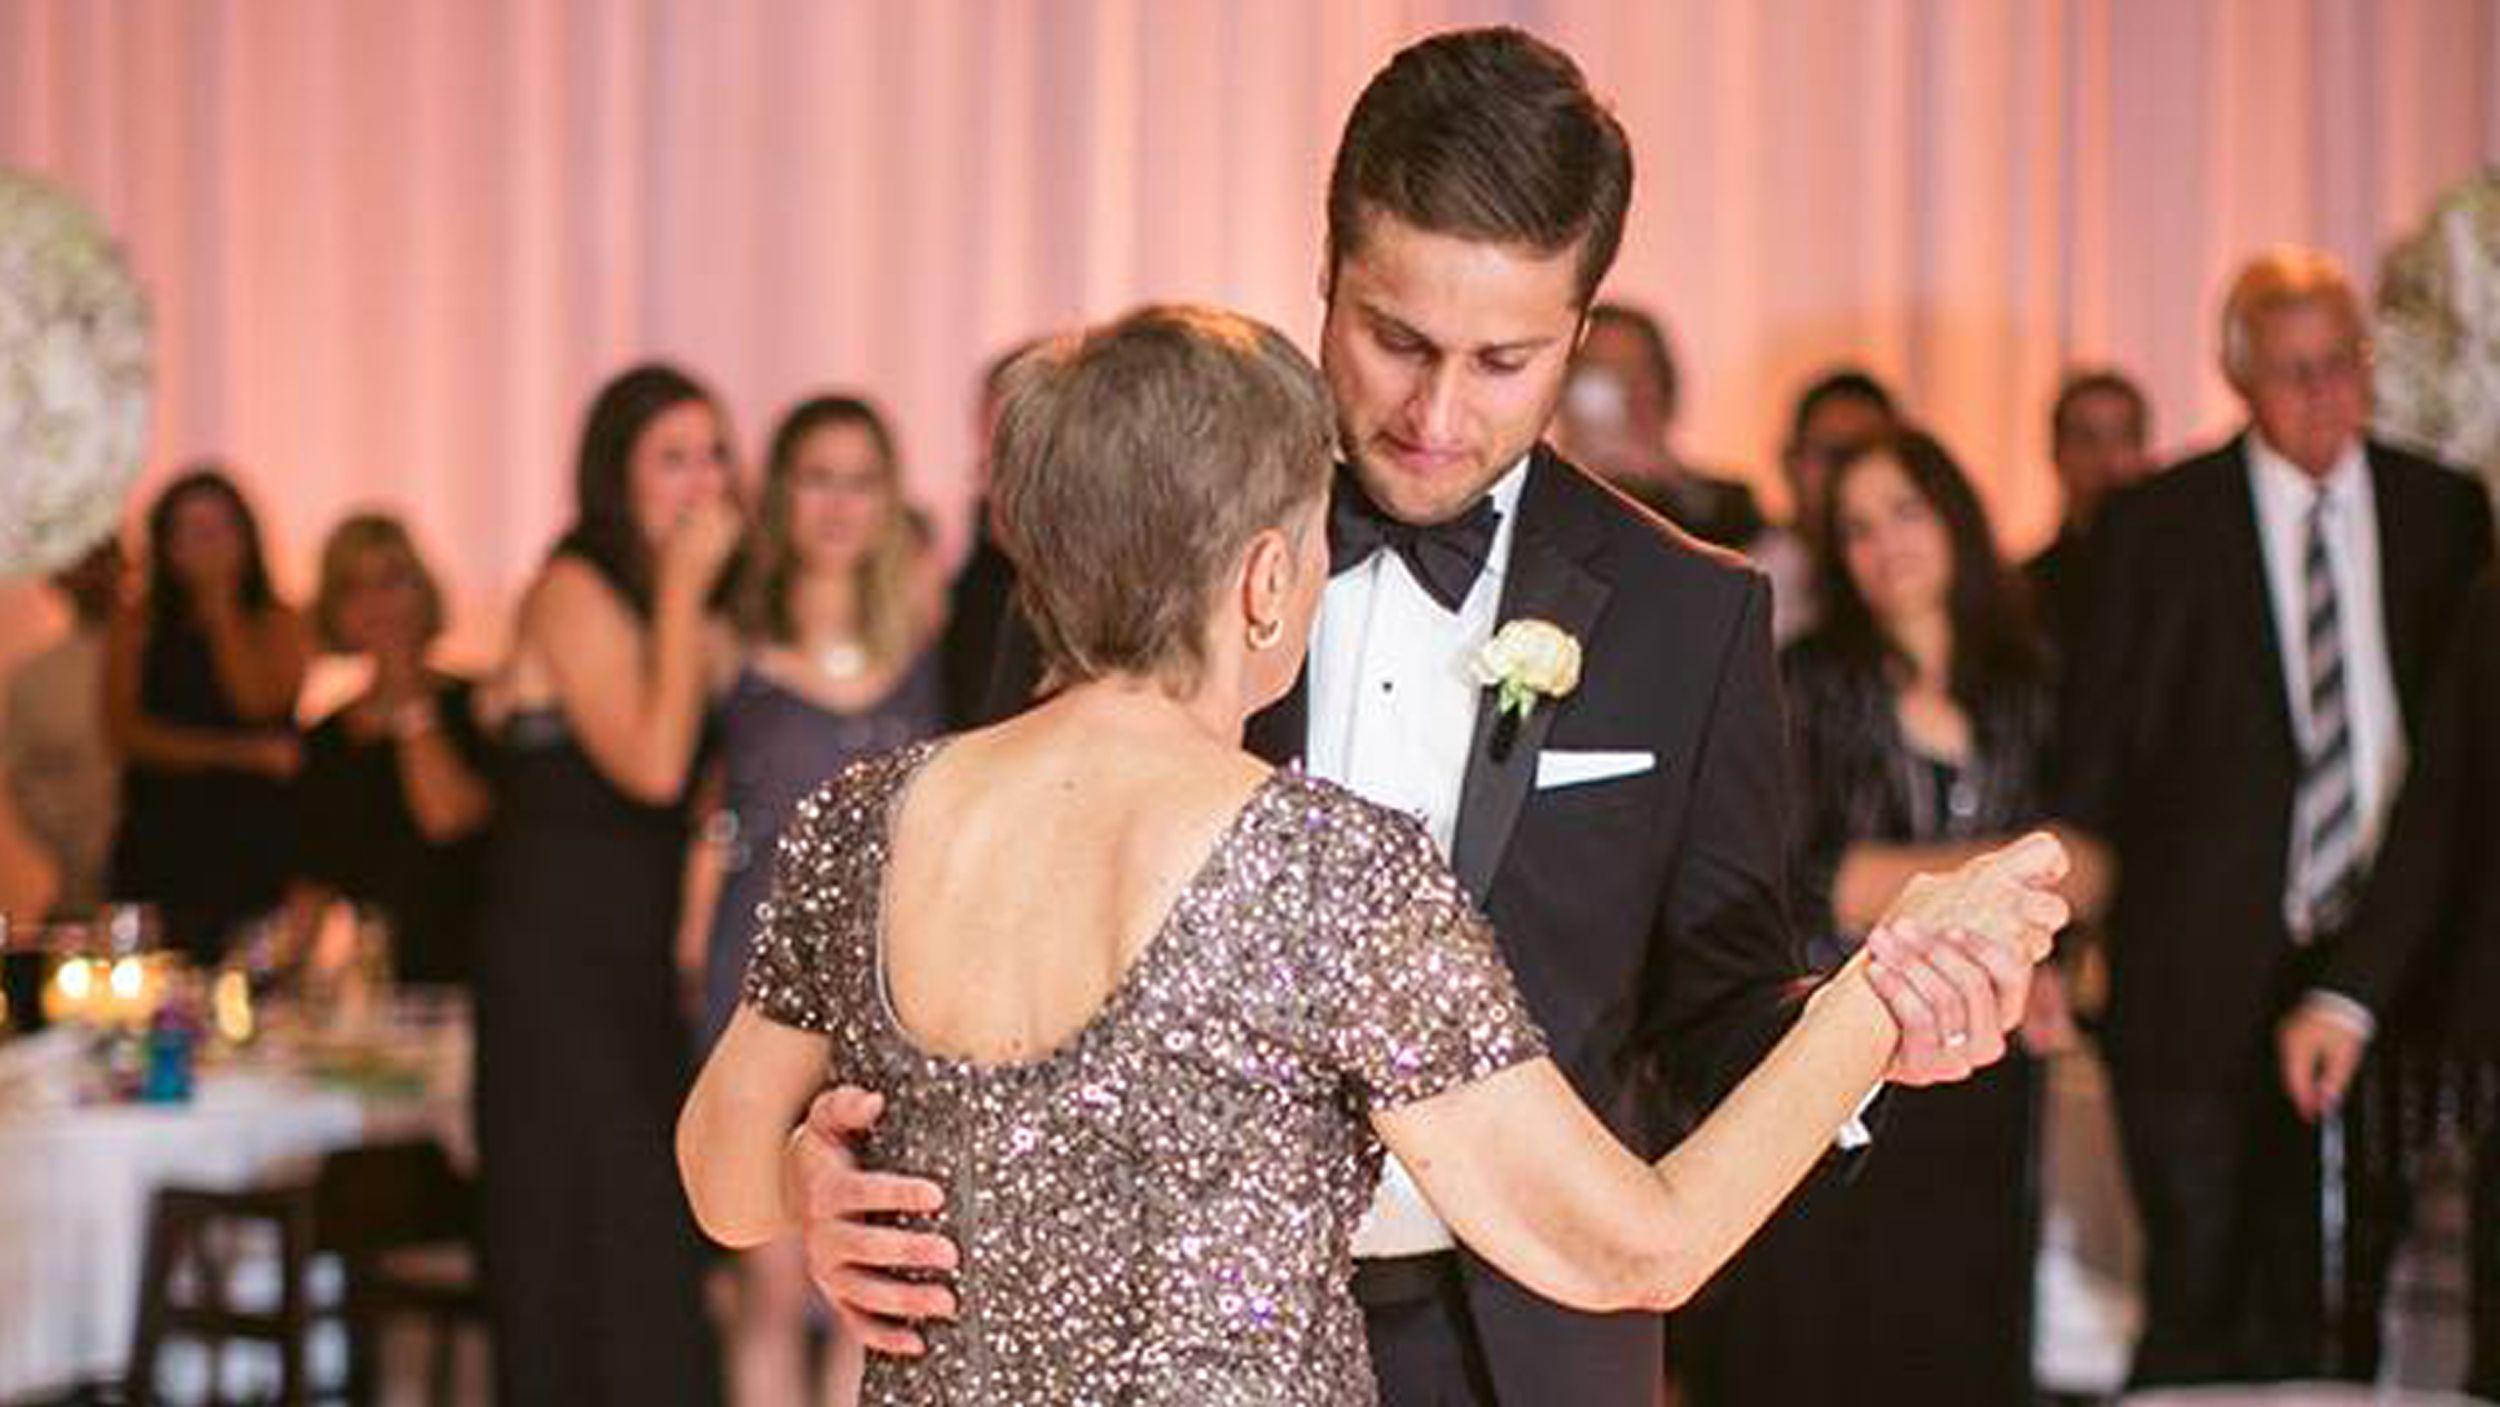 Mom's last dance with son at wedding 'most beautiful thing'